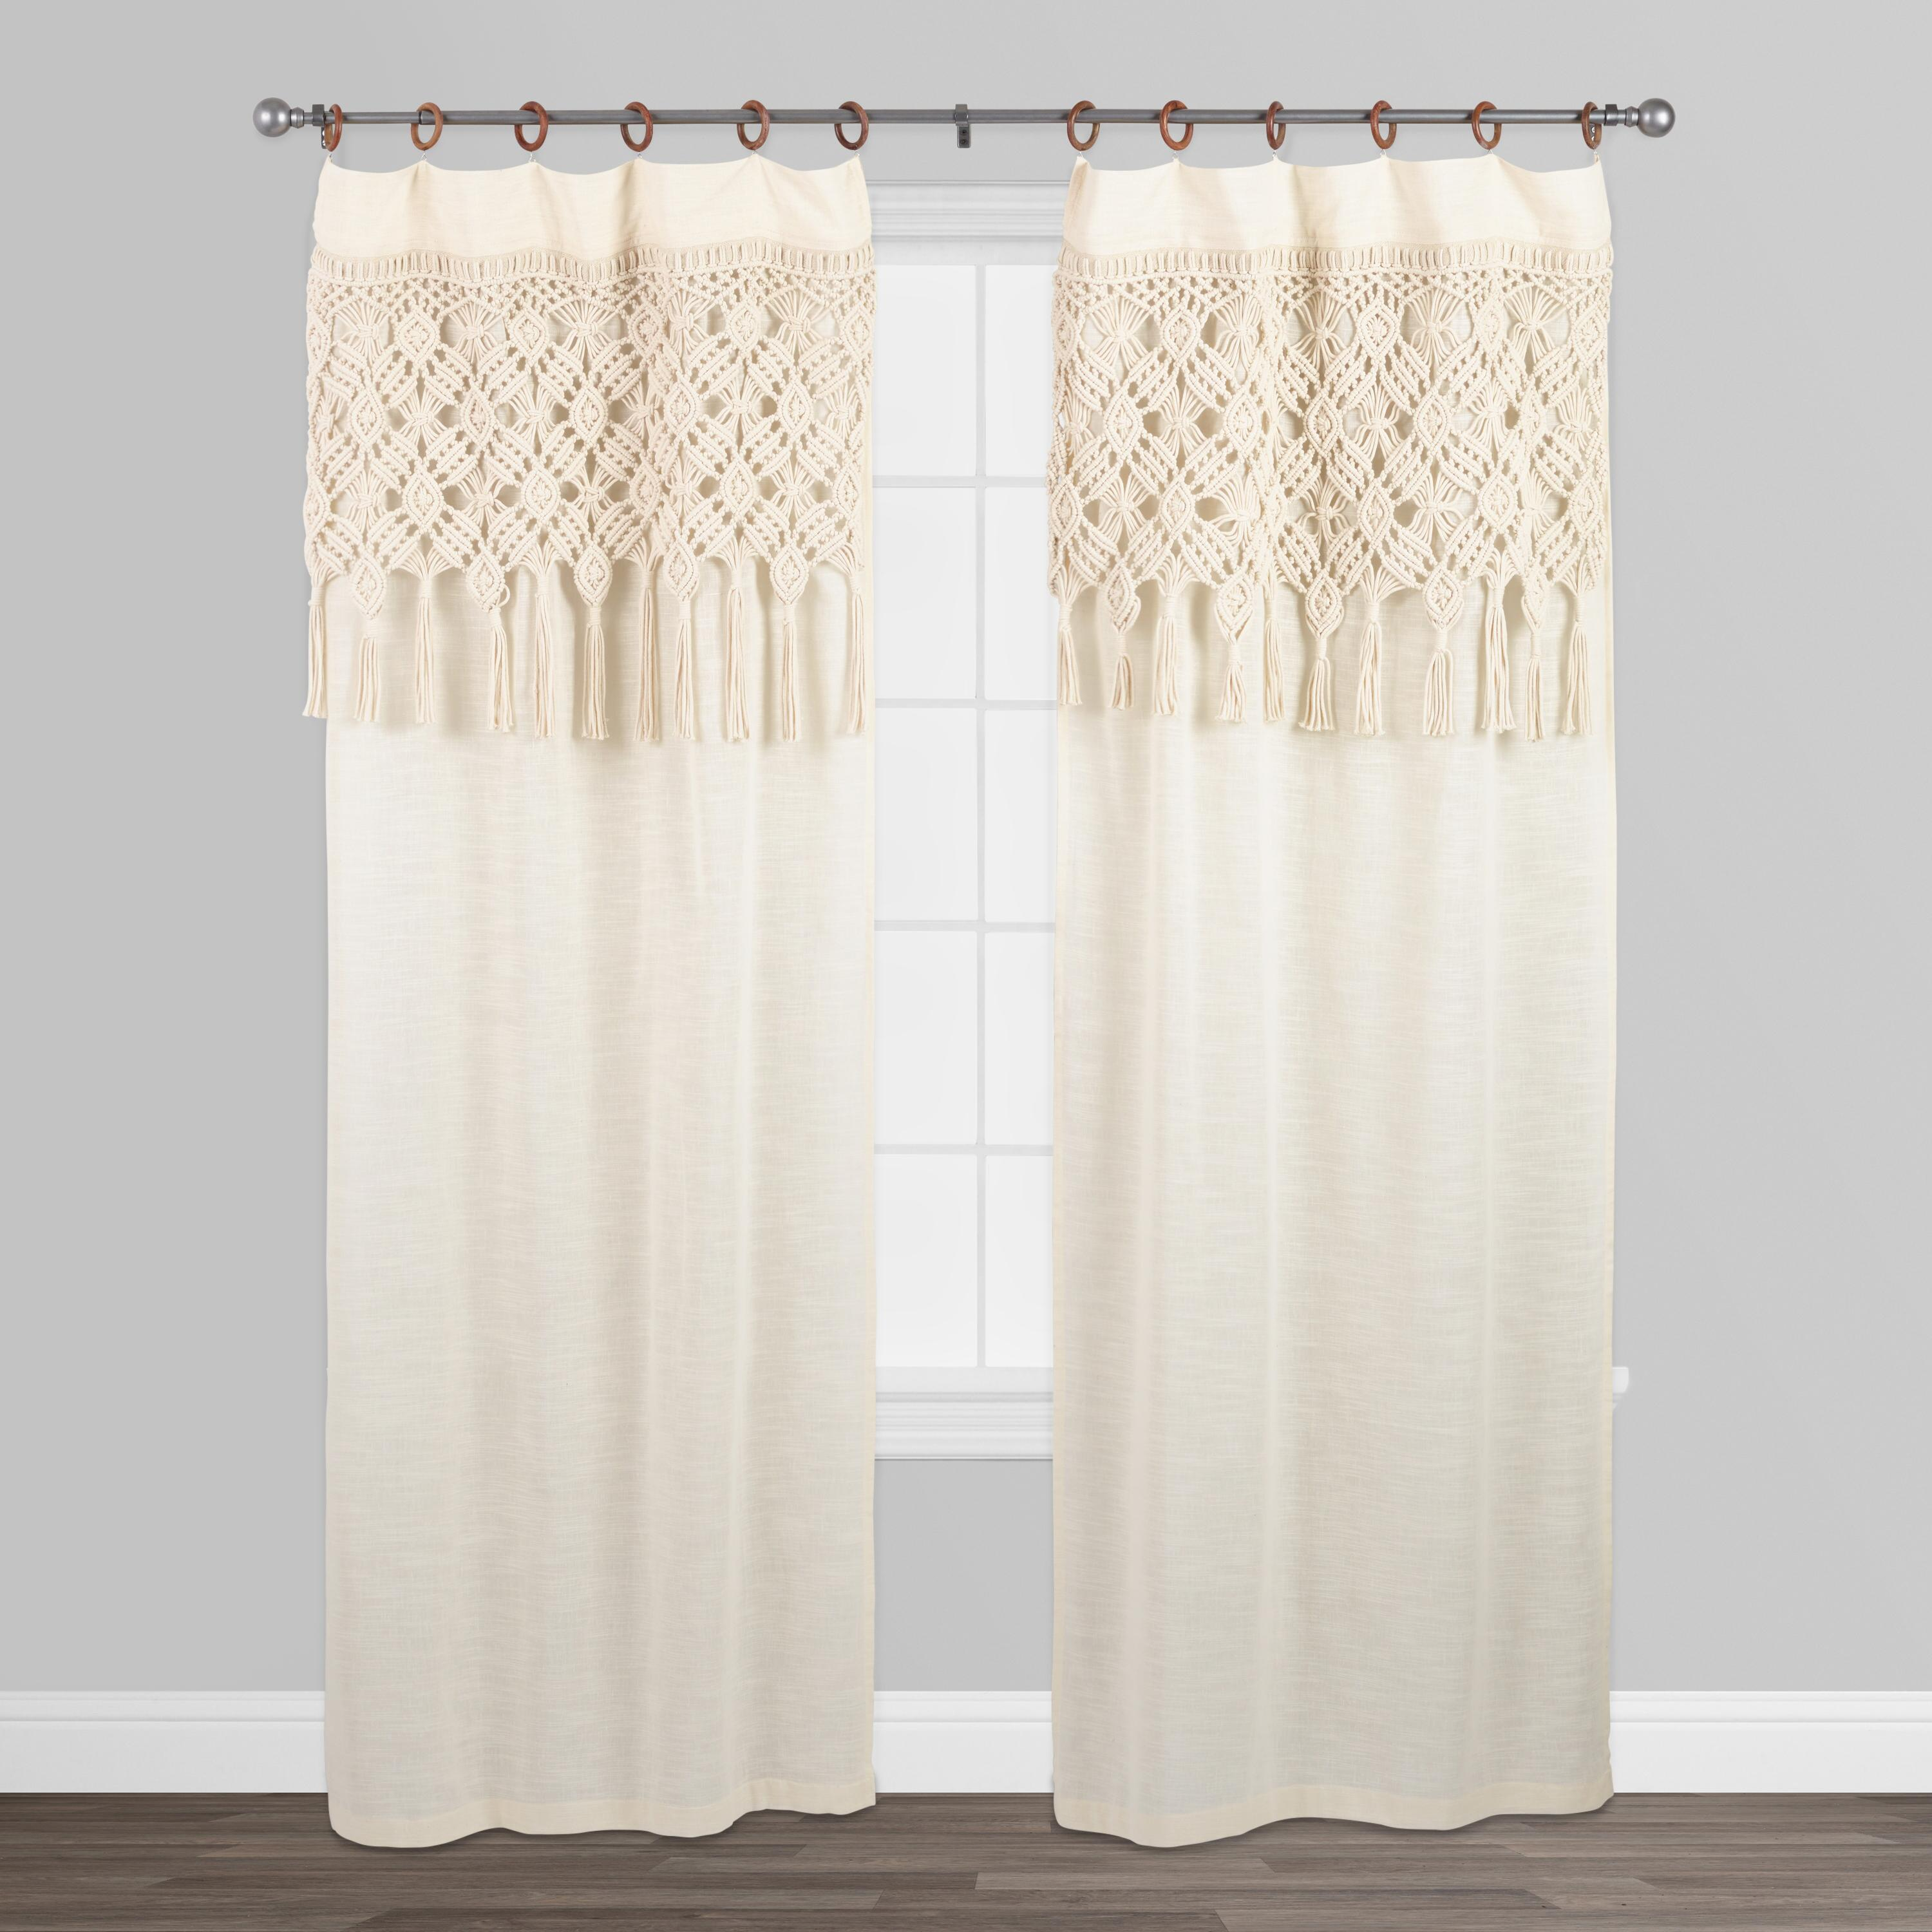 Macrame Curtains With Removable Wood Rings Set Of 2: White